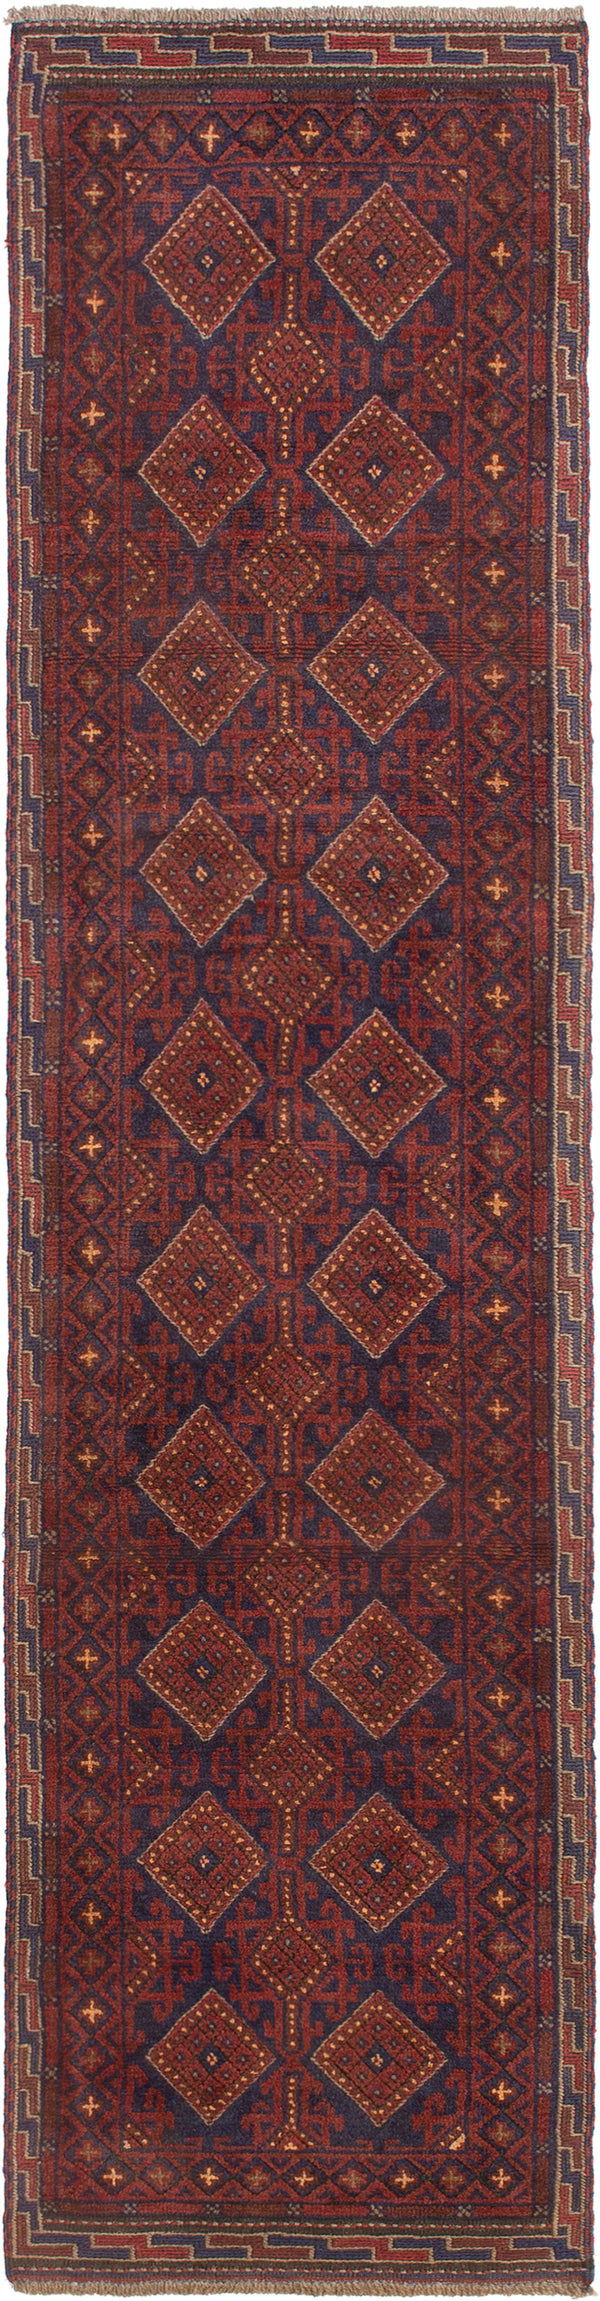 Hand-knotted Afghan Bordered  Tribal Tajik-Caucasian Runner rug  Dark Red 2.2 x 8.11